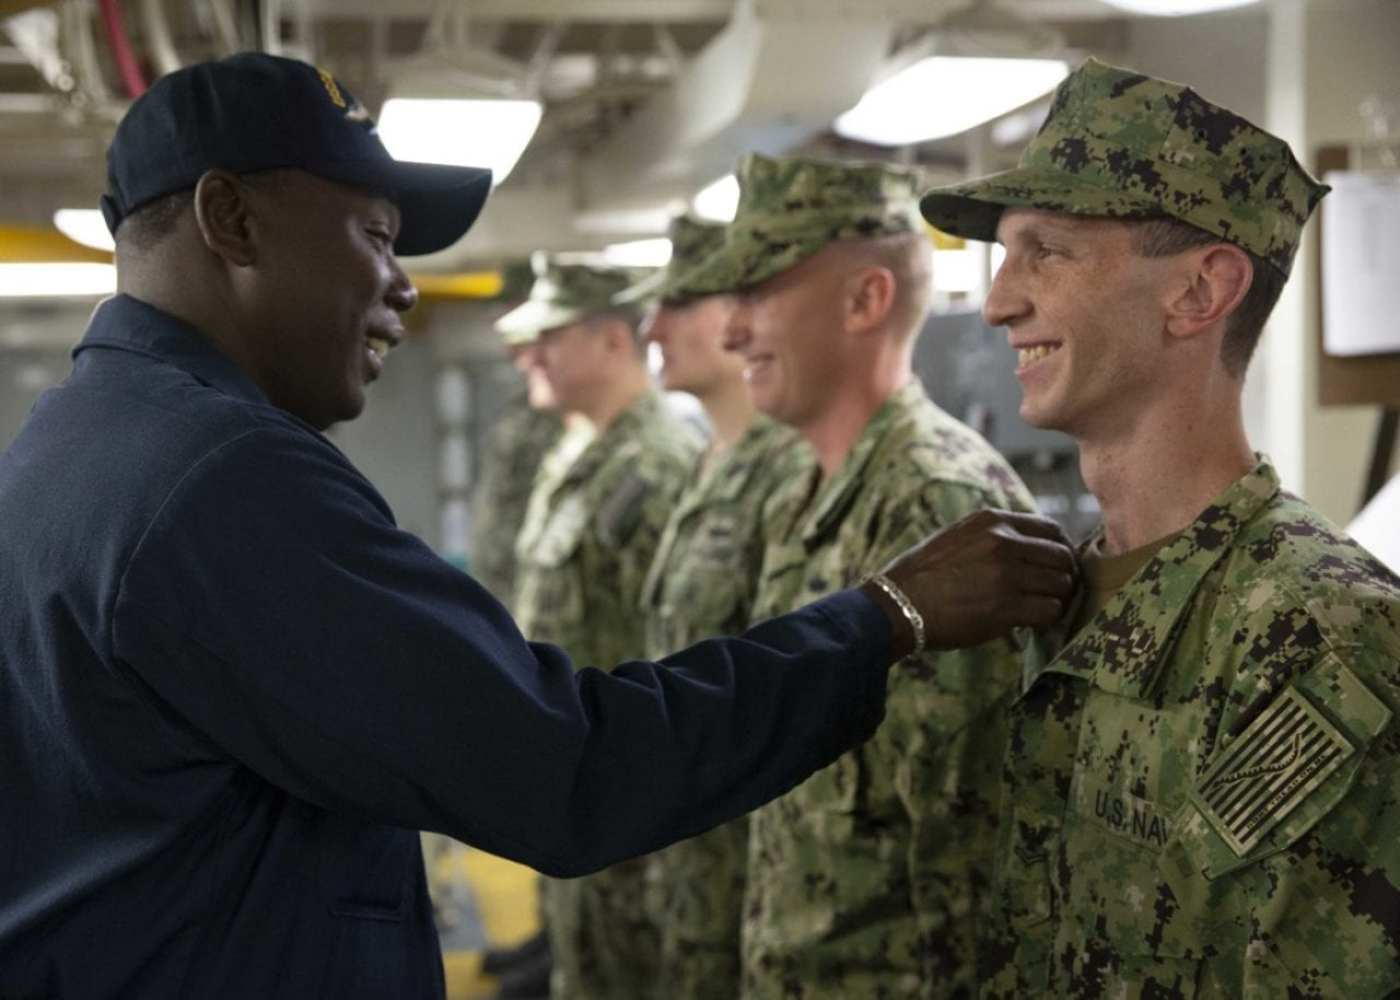 Command Master Chief De'Andre Beaufort performs a uniform inspection on the engineering department's repair division Sailors as part of Division in the Spotlight aboard the aircraft carrier USS Gerald R. Ford (CVN 78). Gerald R. Ford is currently undergoing its post-shakedown availability at Huntington Ingalls Industries-Newport News Shipbuilding. (U.S. Navy photo by Mass Communication Specialist Seaman Apprentice Zack Guth/Released)